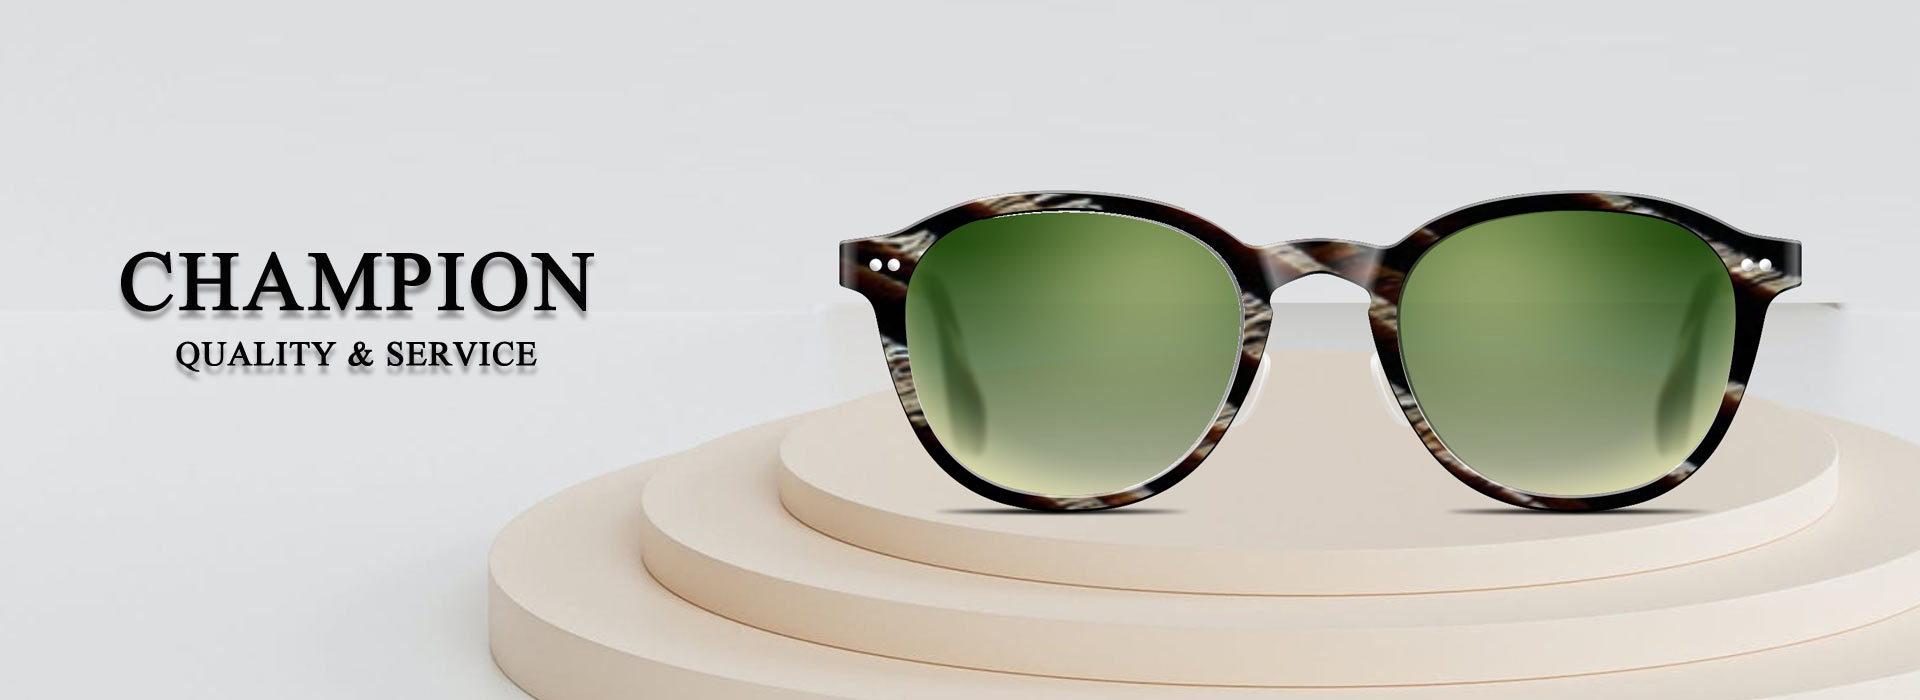 Bestsea glasses supplier champion service and quality